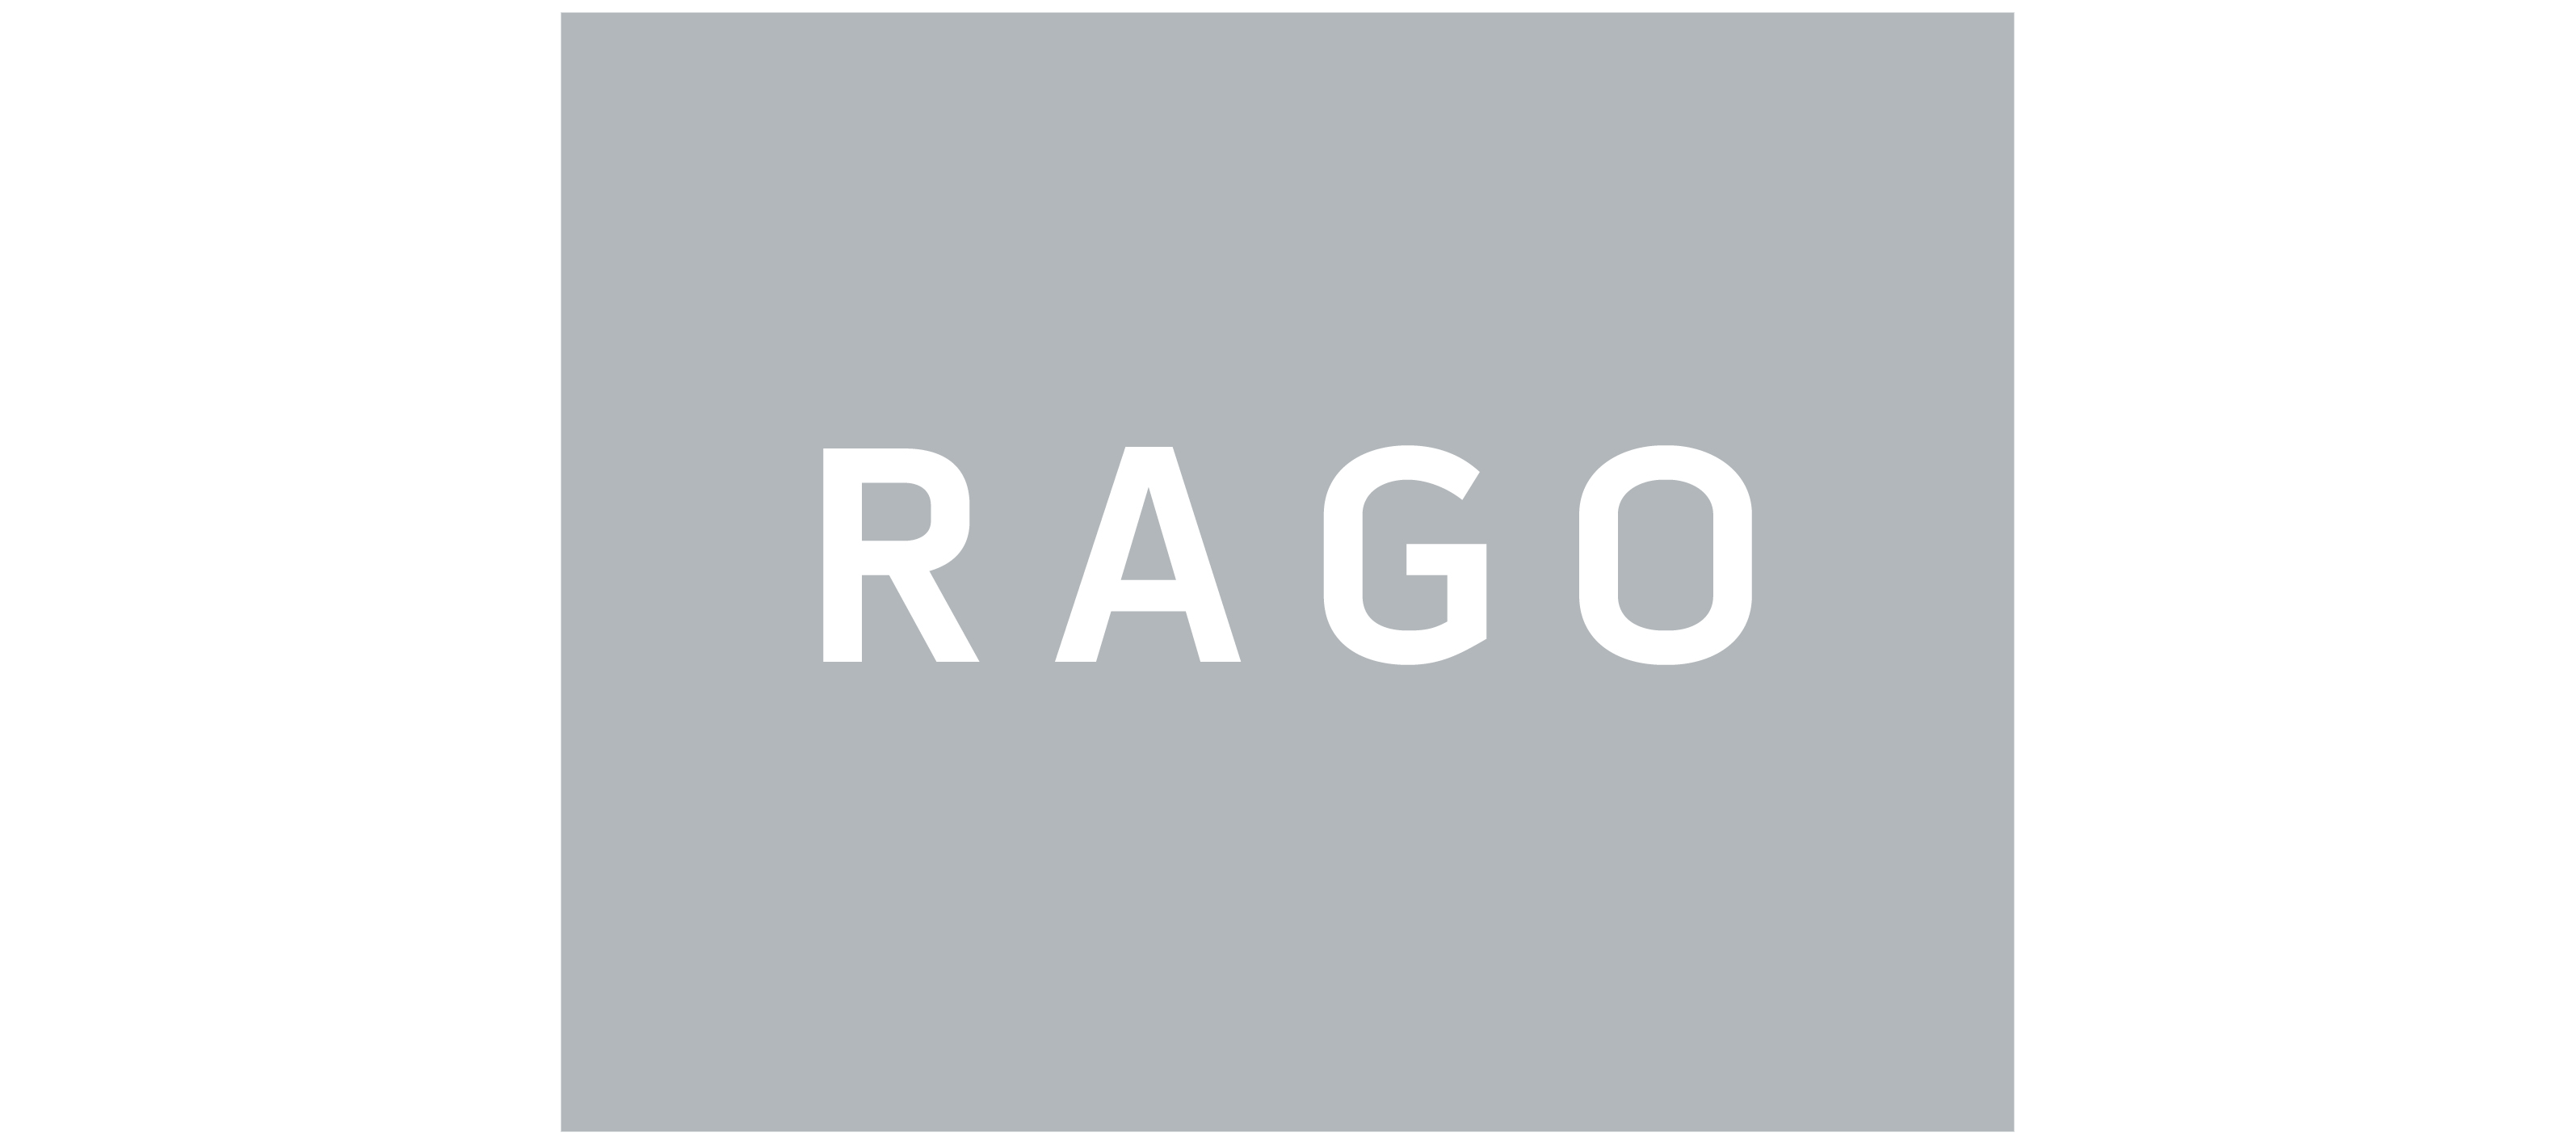 Rago Auction House, Lambertville, New Jersey